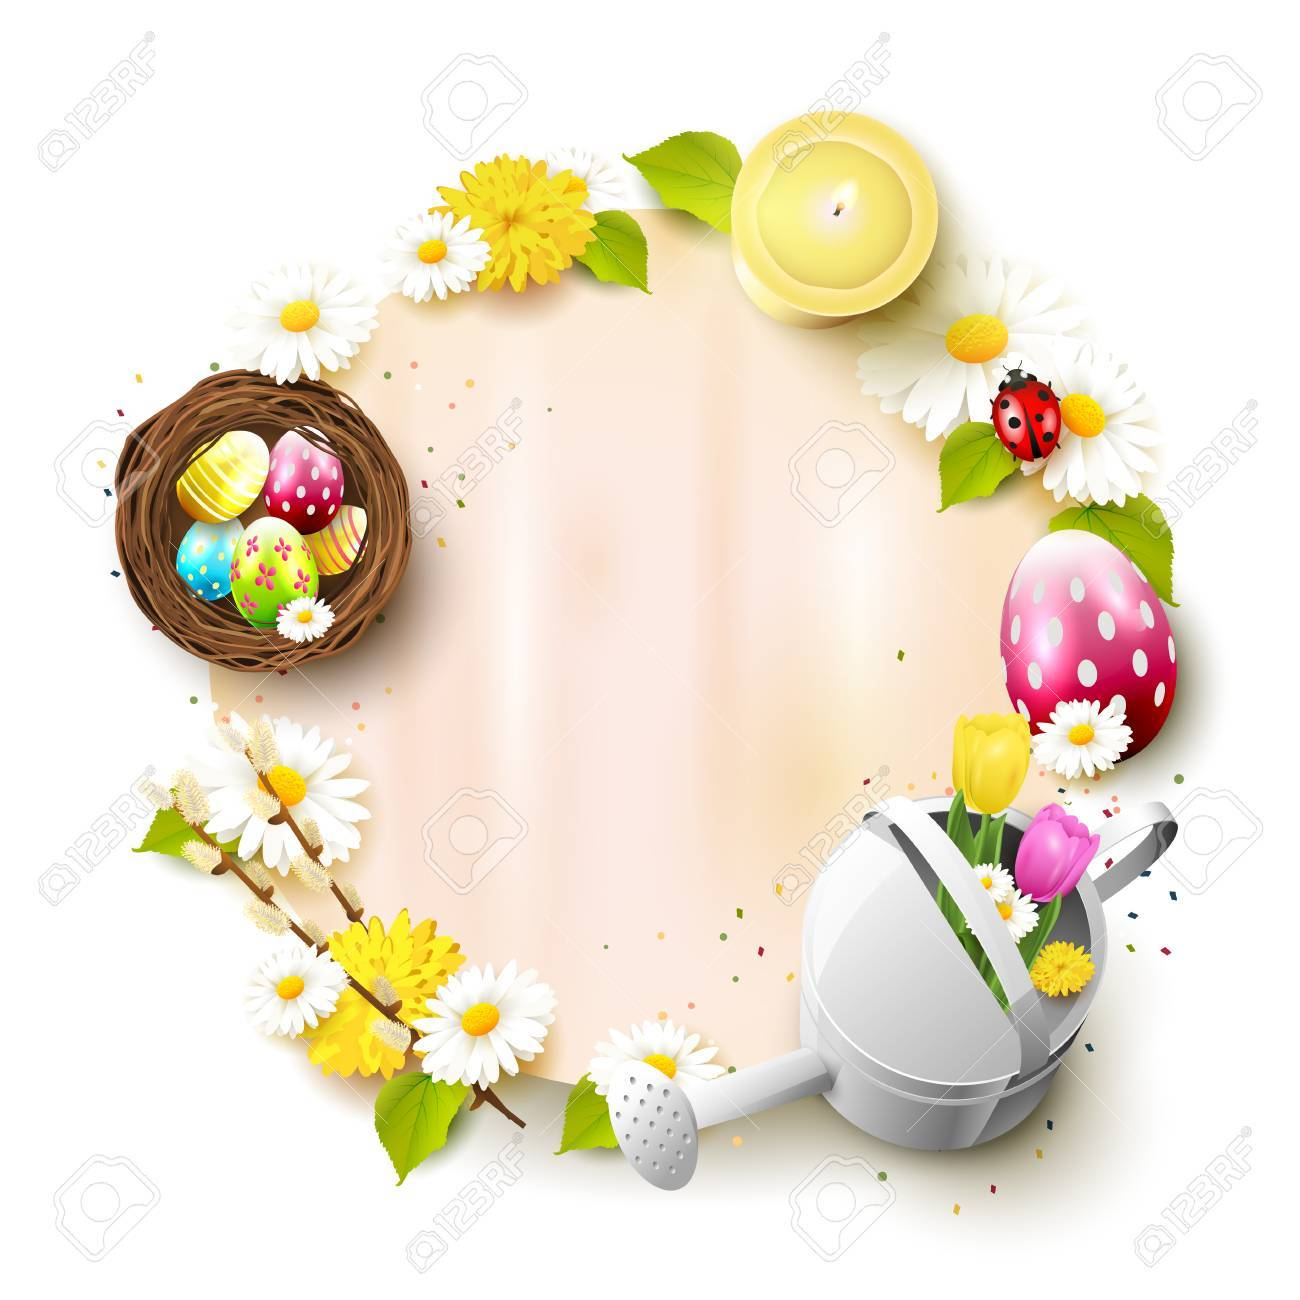 Cute Easter Template With Decorations And Empty Paper With Place